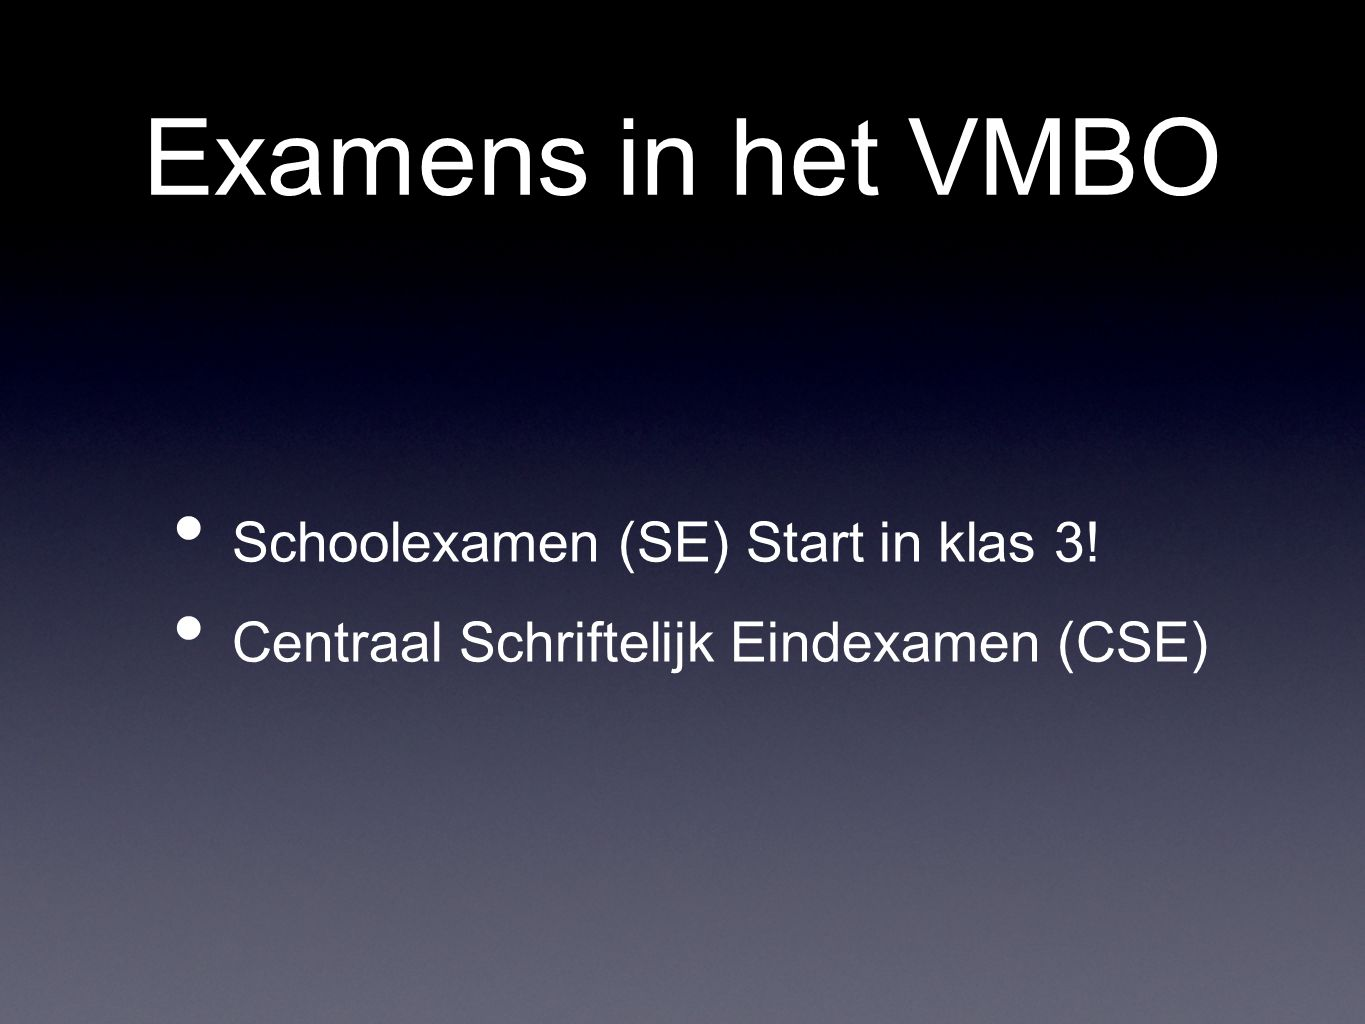 Examens in het VMBO Schoolexamen (SE) Start in klas 3!